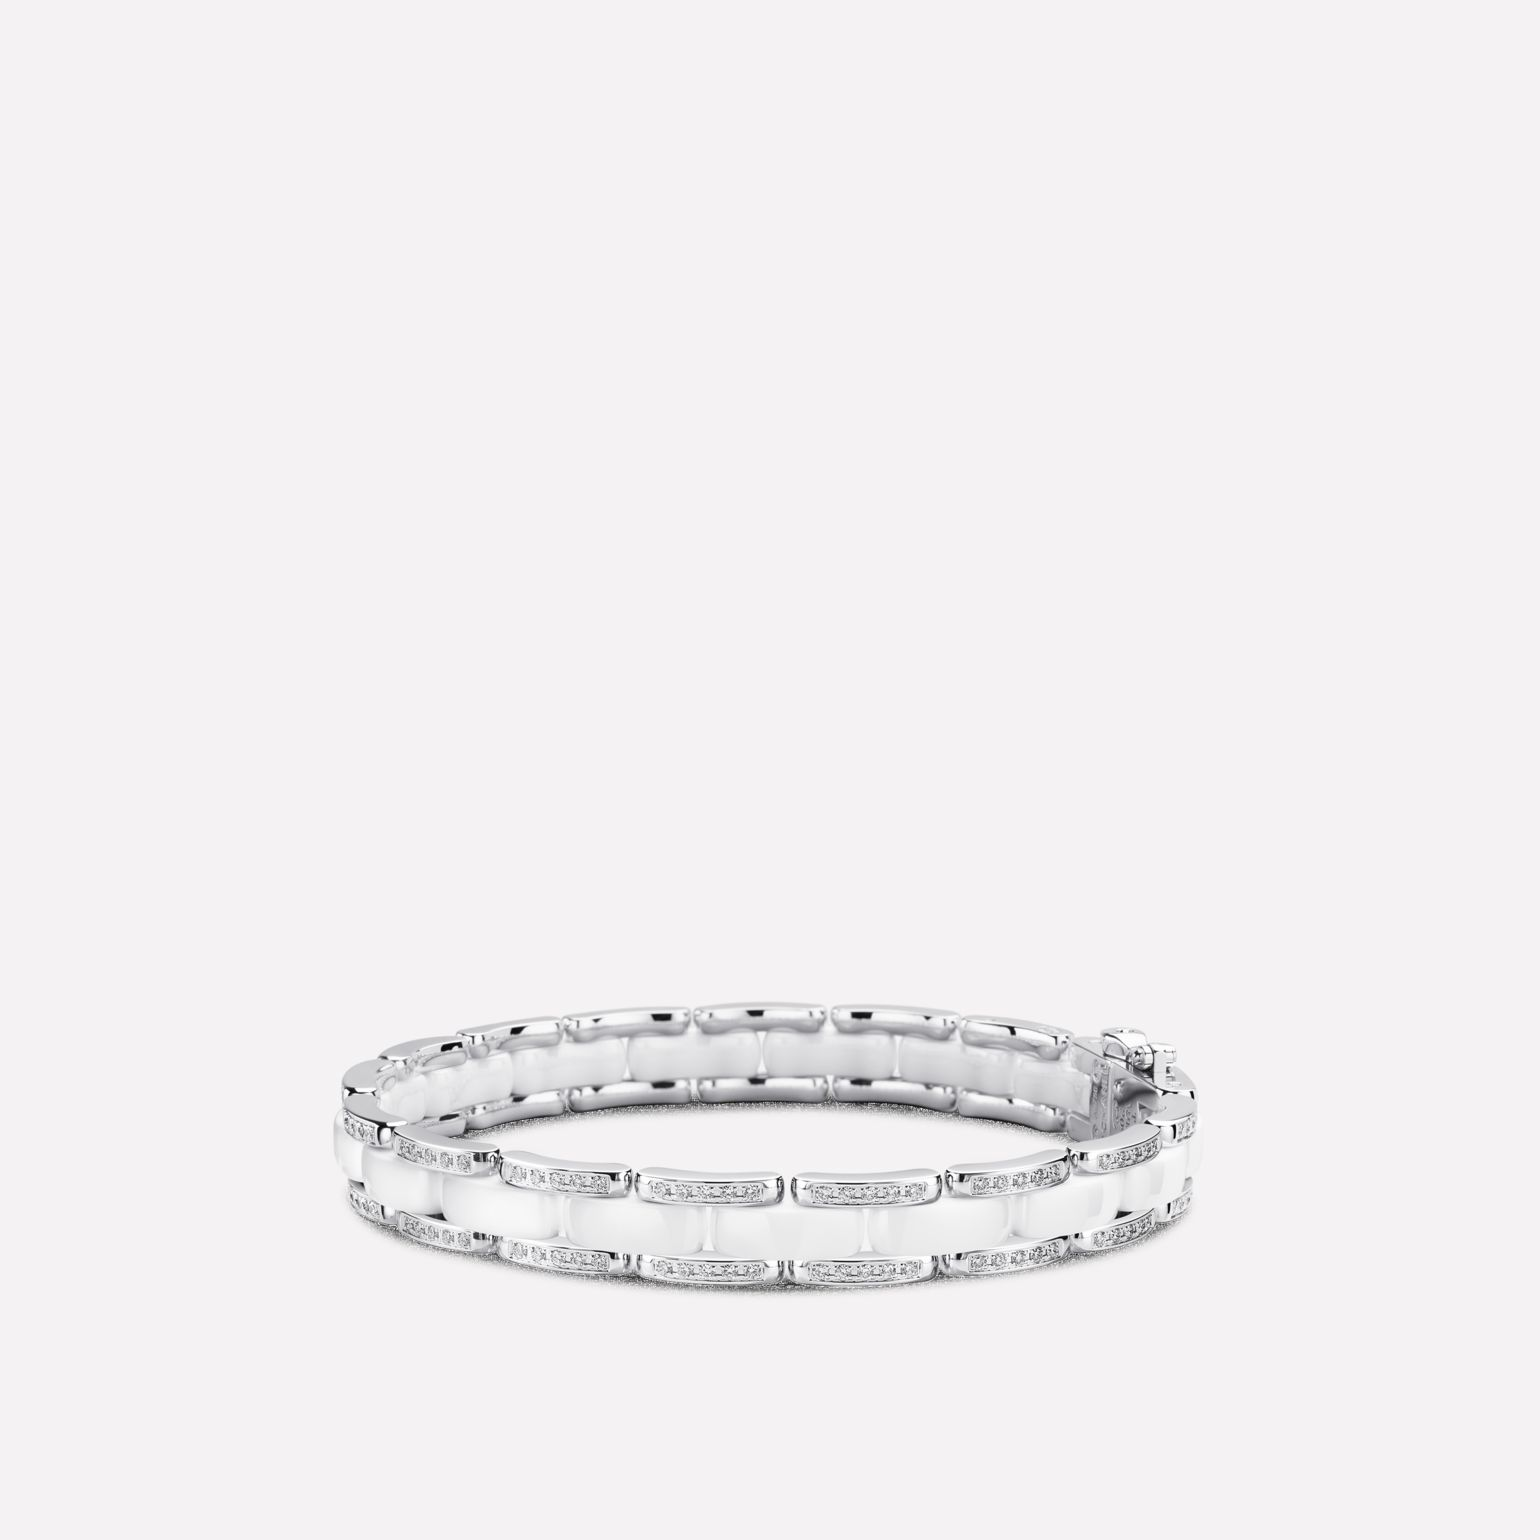 Ultra Bracelet Ultra bracelet in white ceramic, 18K white gold and diamonds. Flexible version.